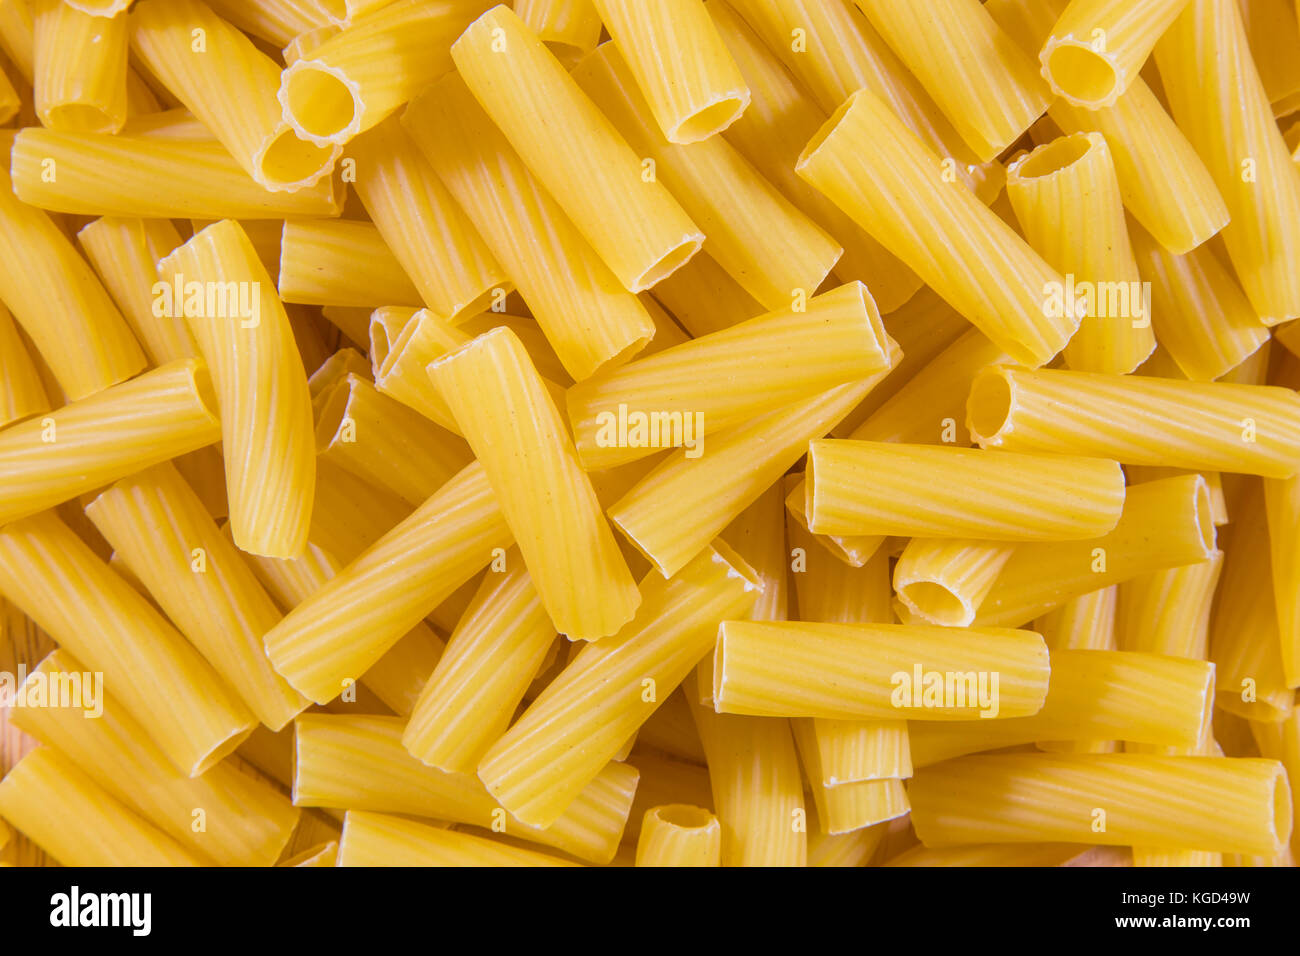 Short pasta obtained by processing durum wheat semolina. - Stock Image